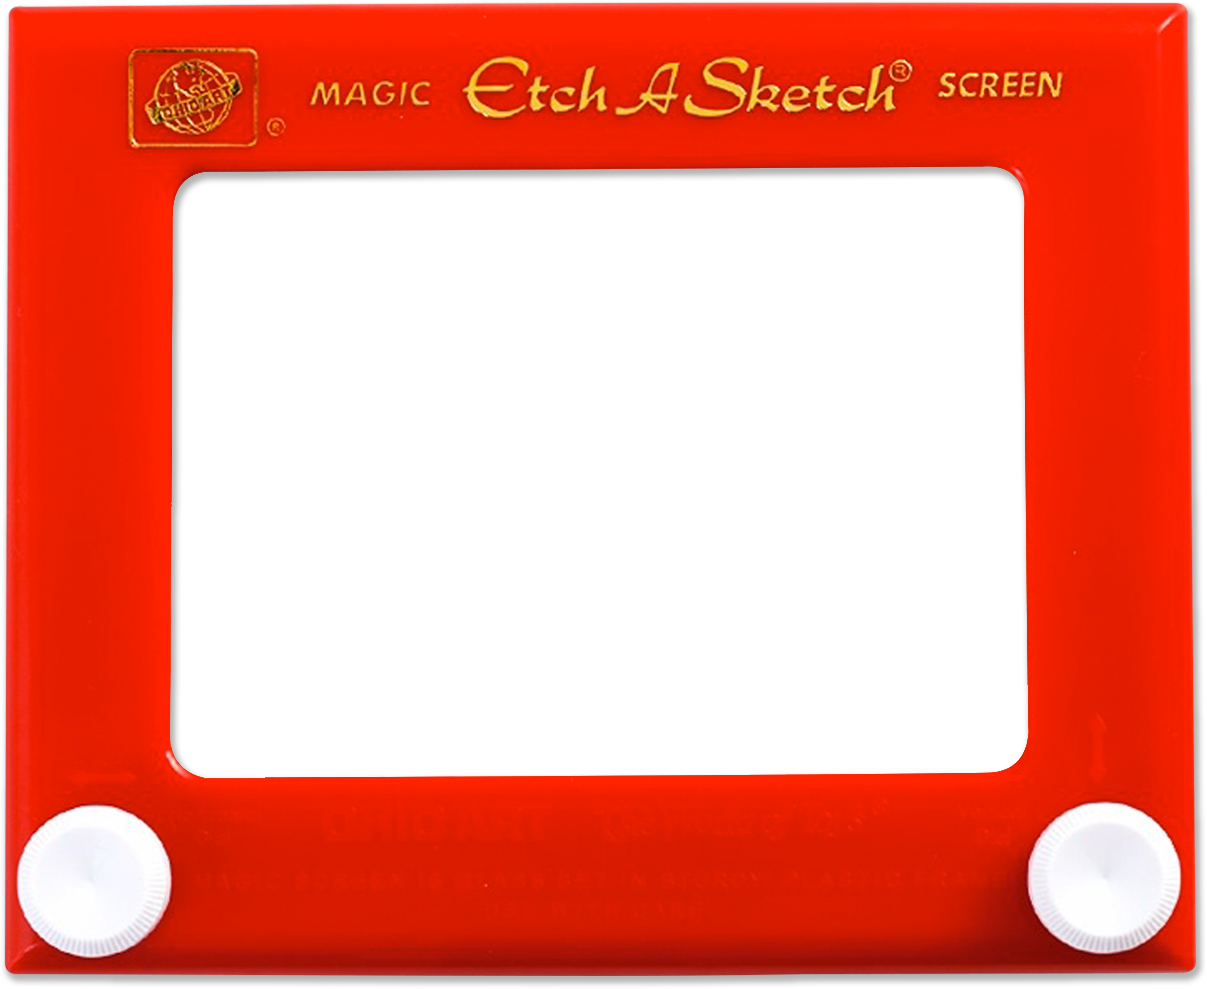 Download Etch A Sketch Transparent Png Image With No Background Pngkey Com